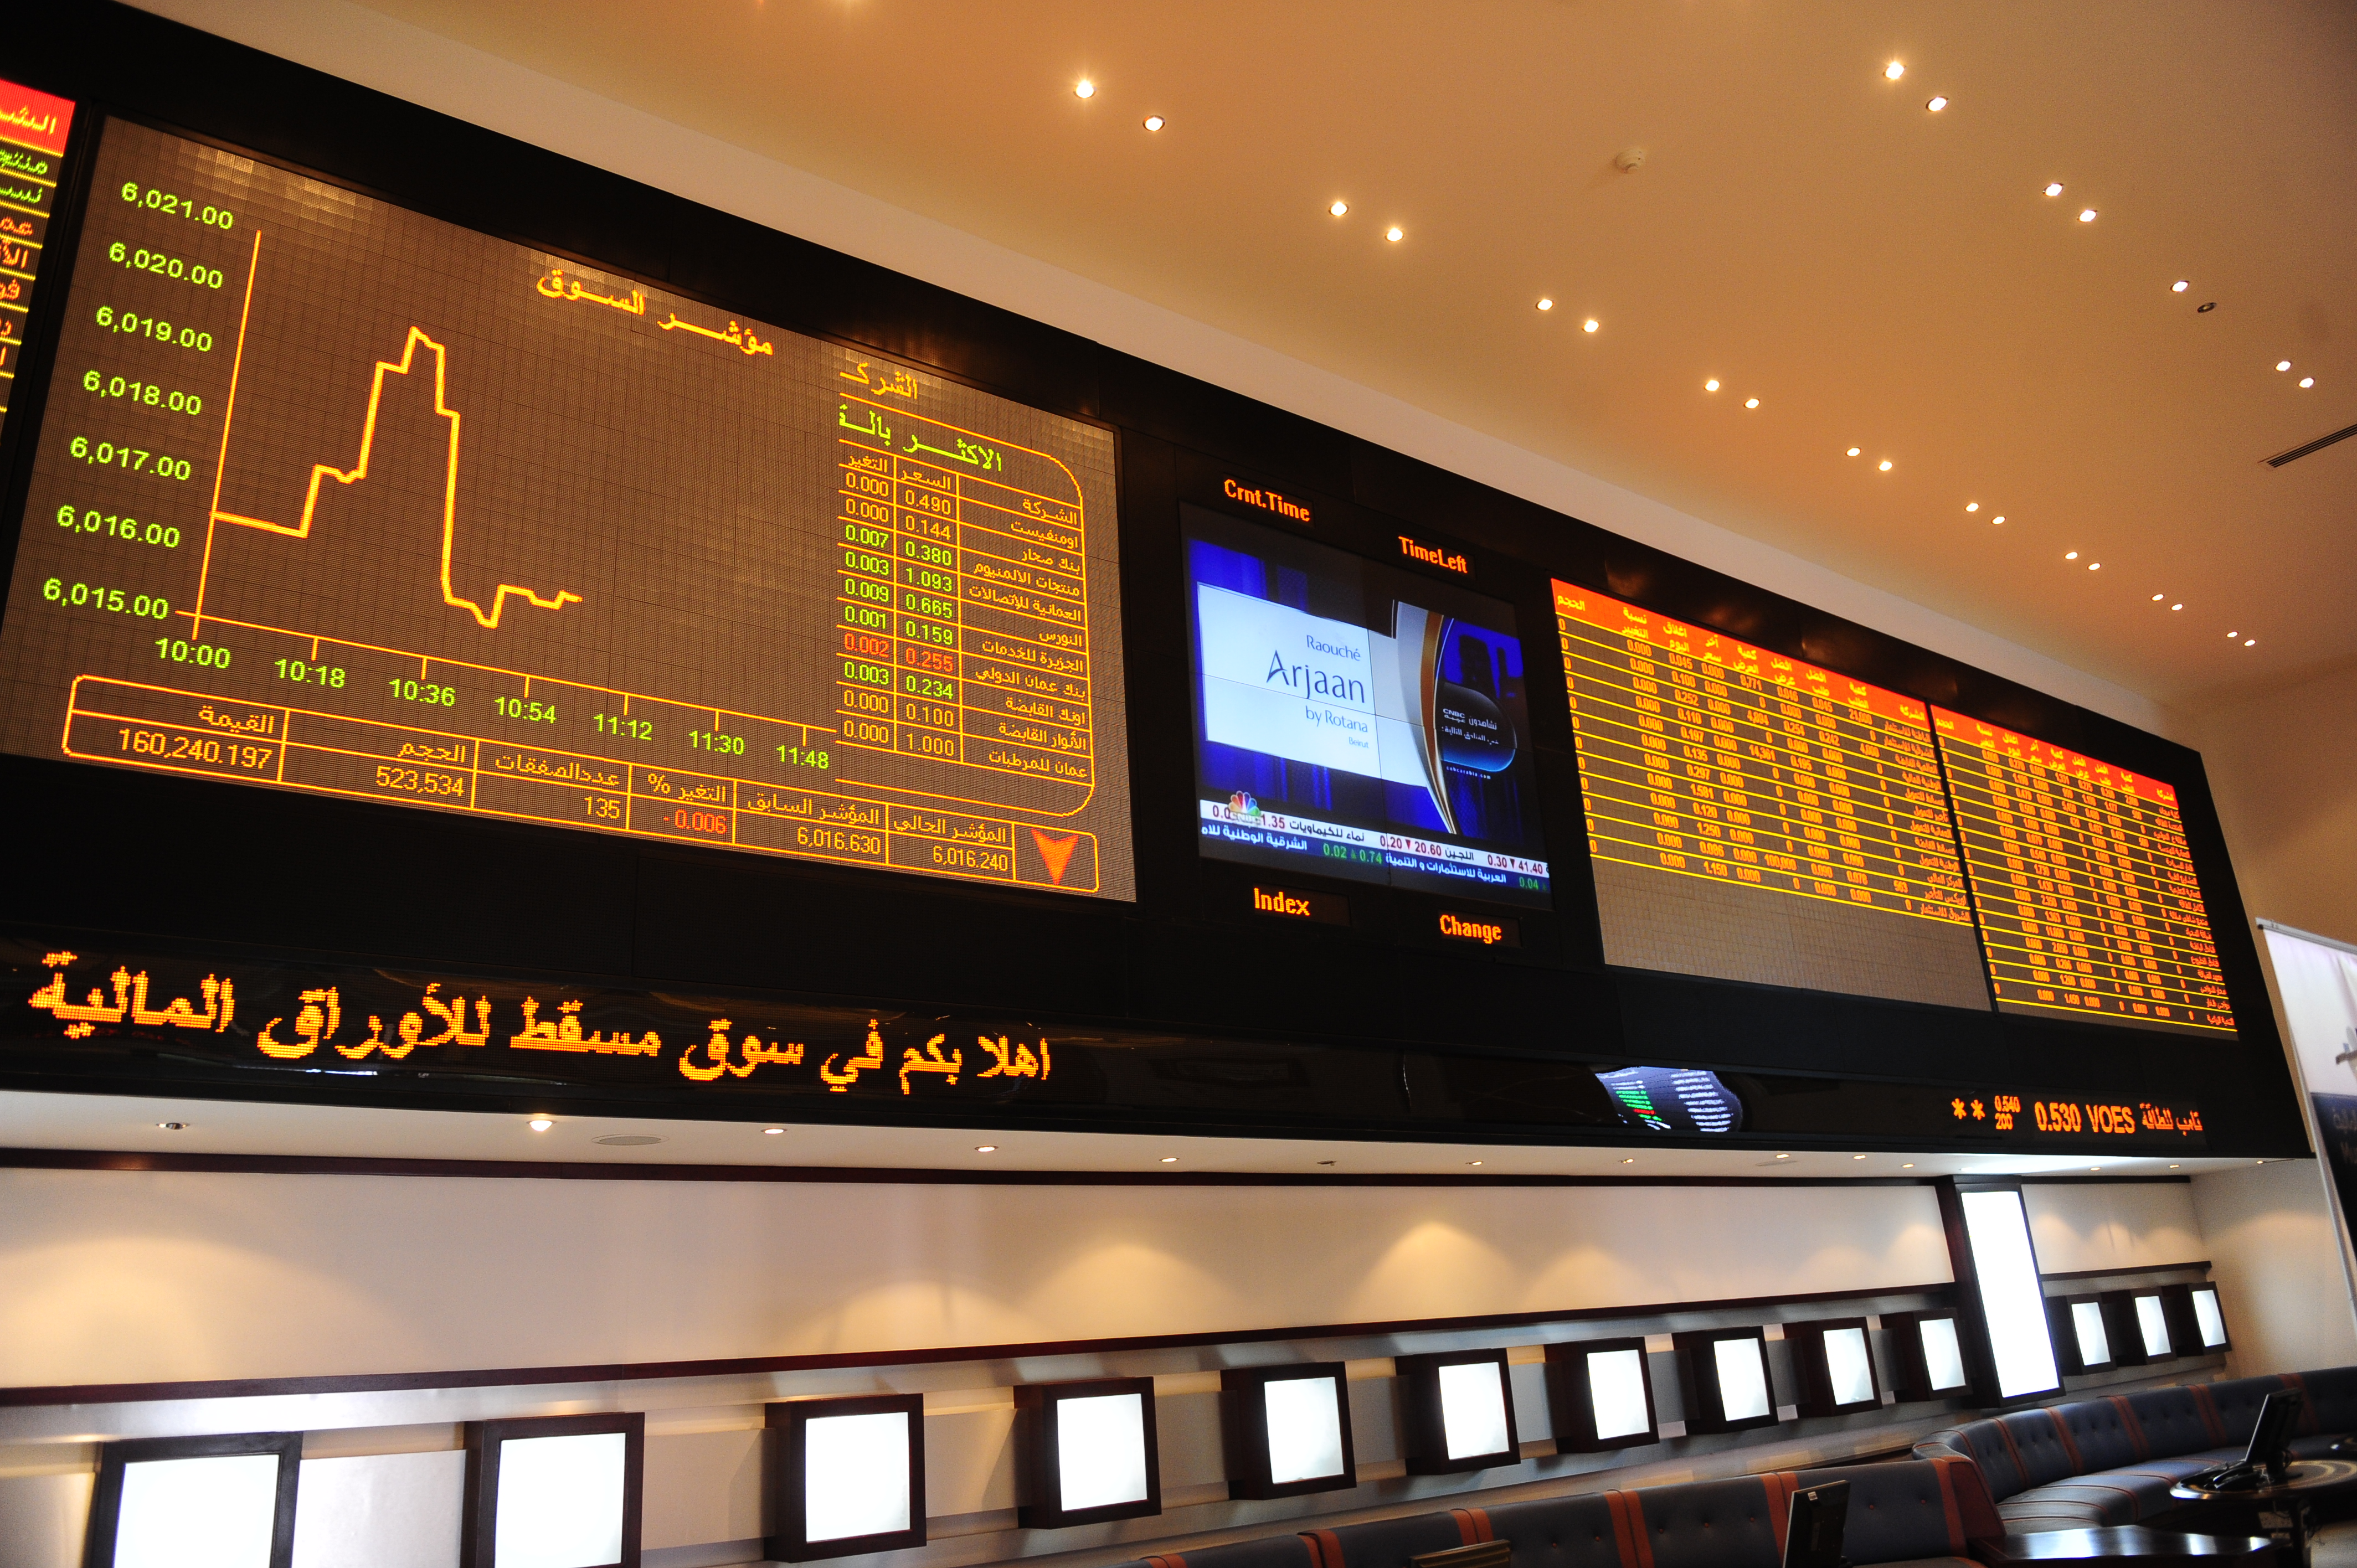 Muscat bourse surges ahead amid better volume